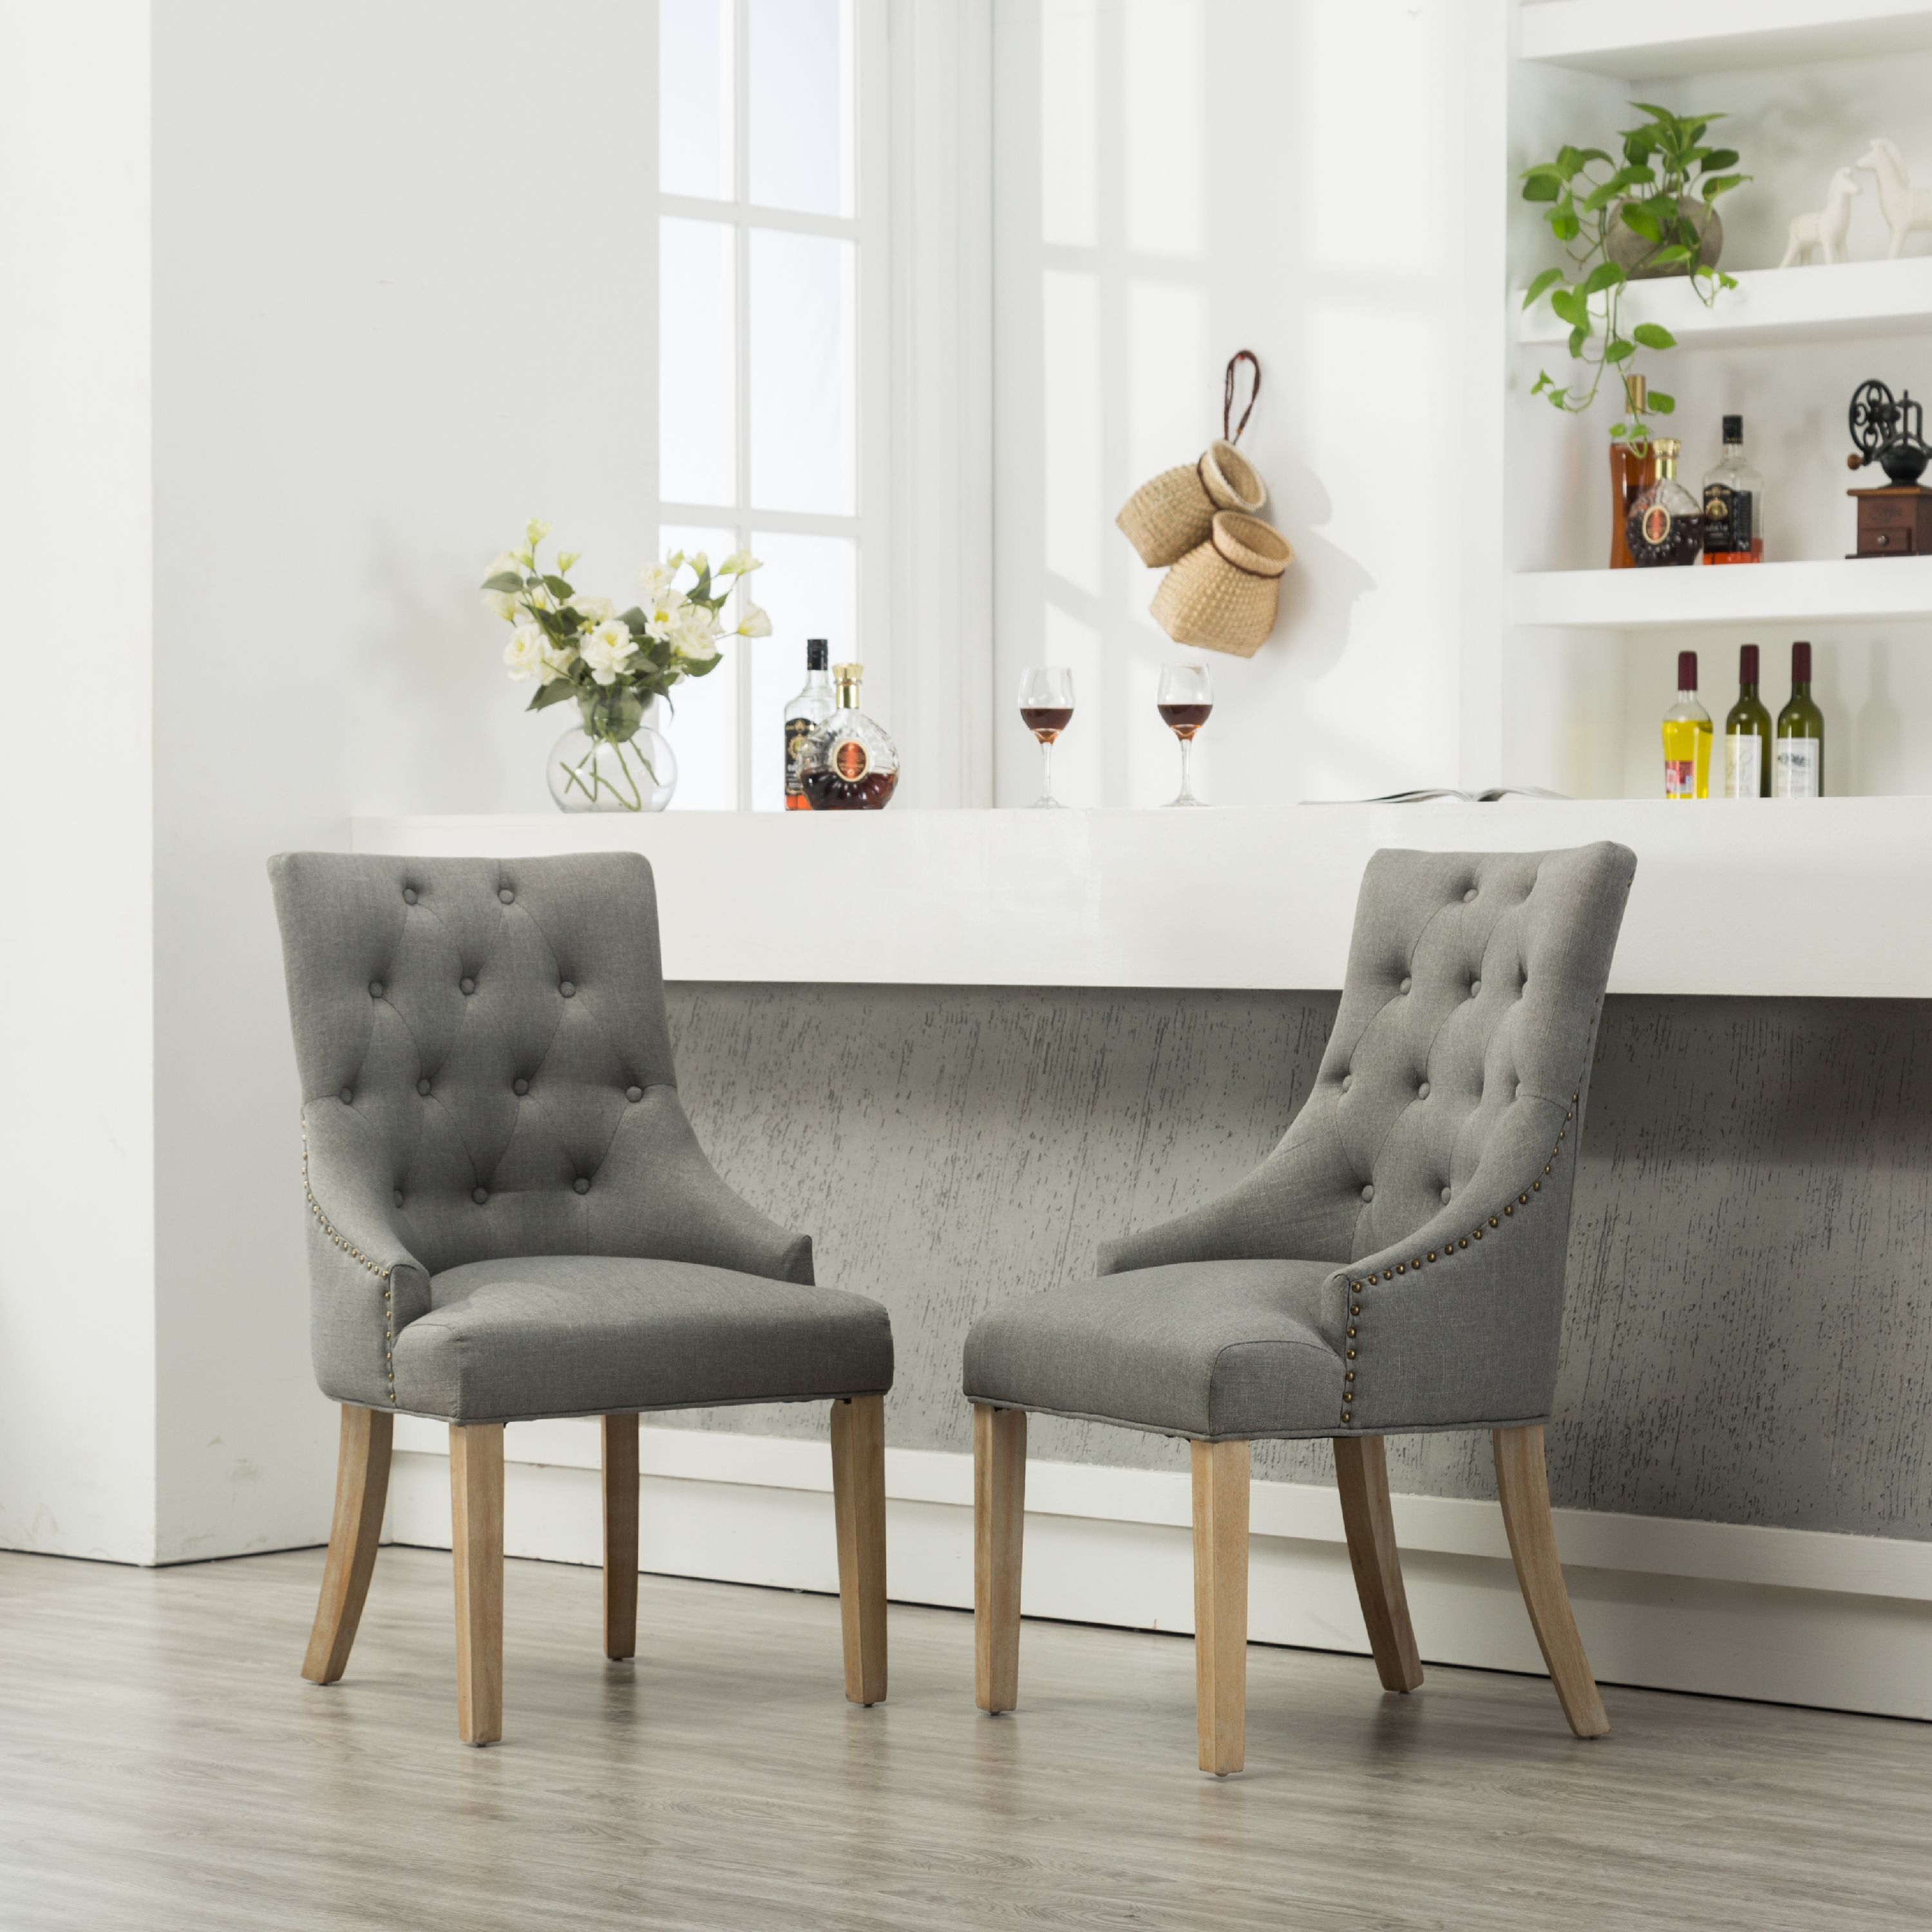 Merveilleux Roundhill Gray Button Tufted Solid Wood Wingback Hostess Chairs With Nail  Heads, Set Of 2